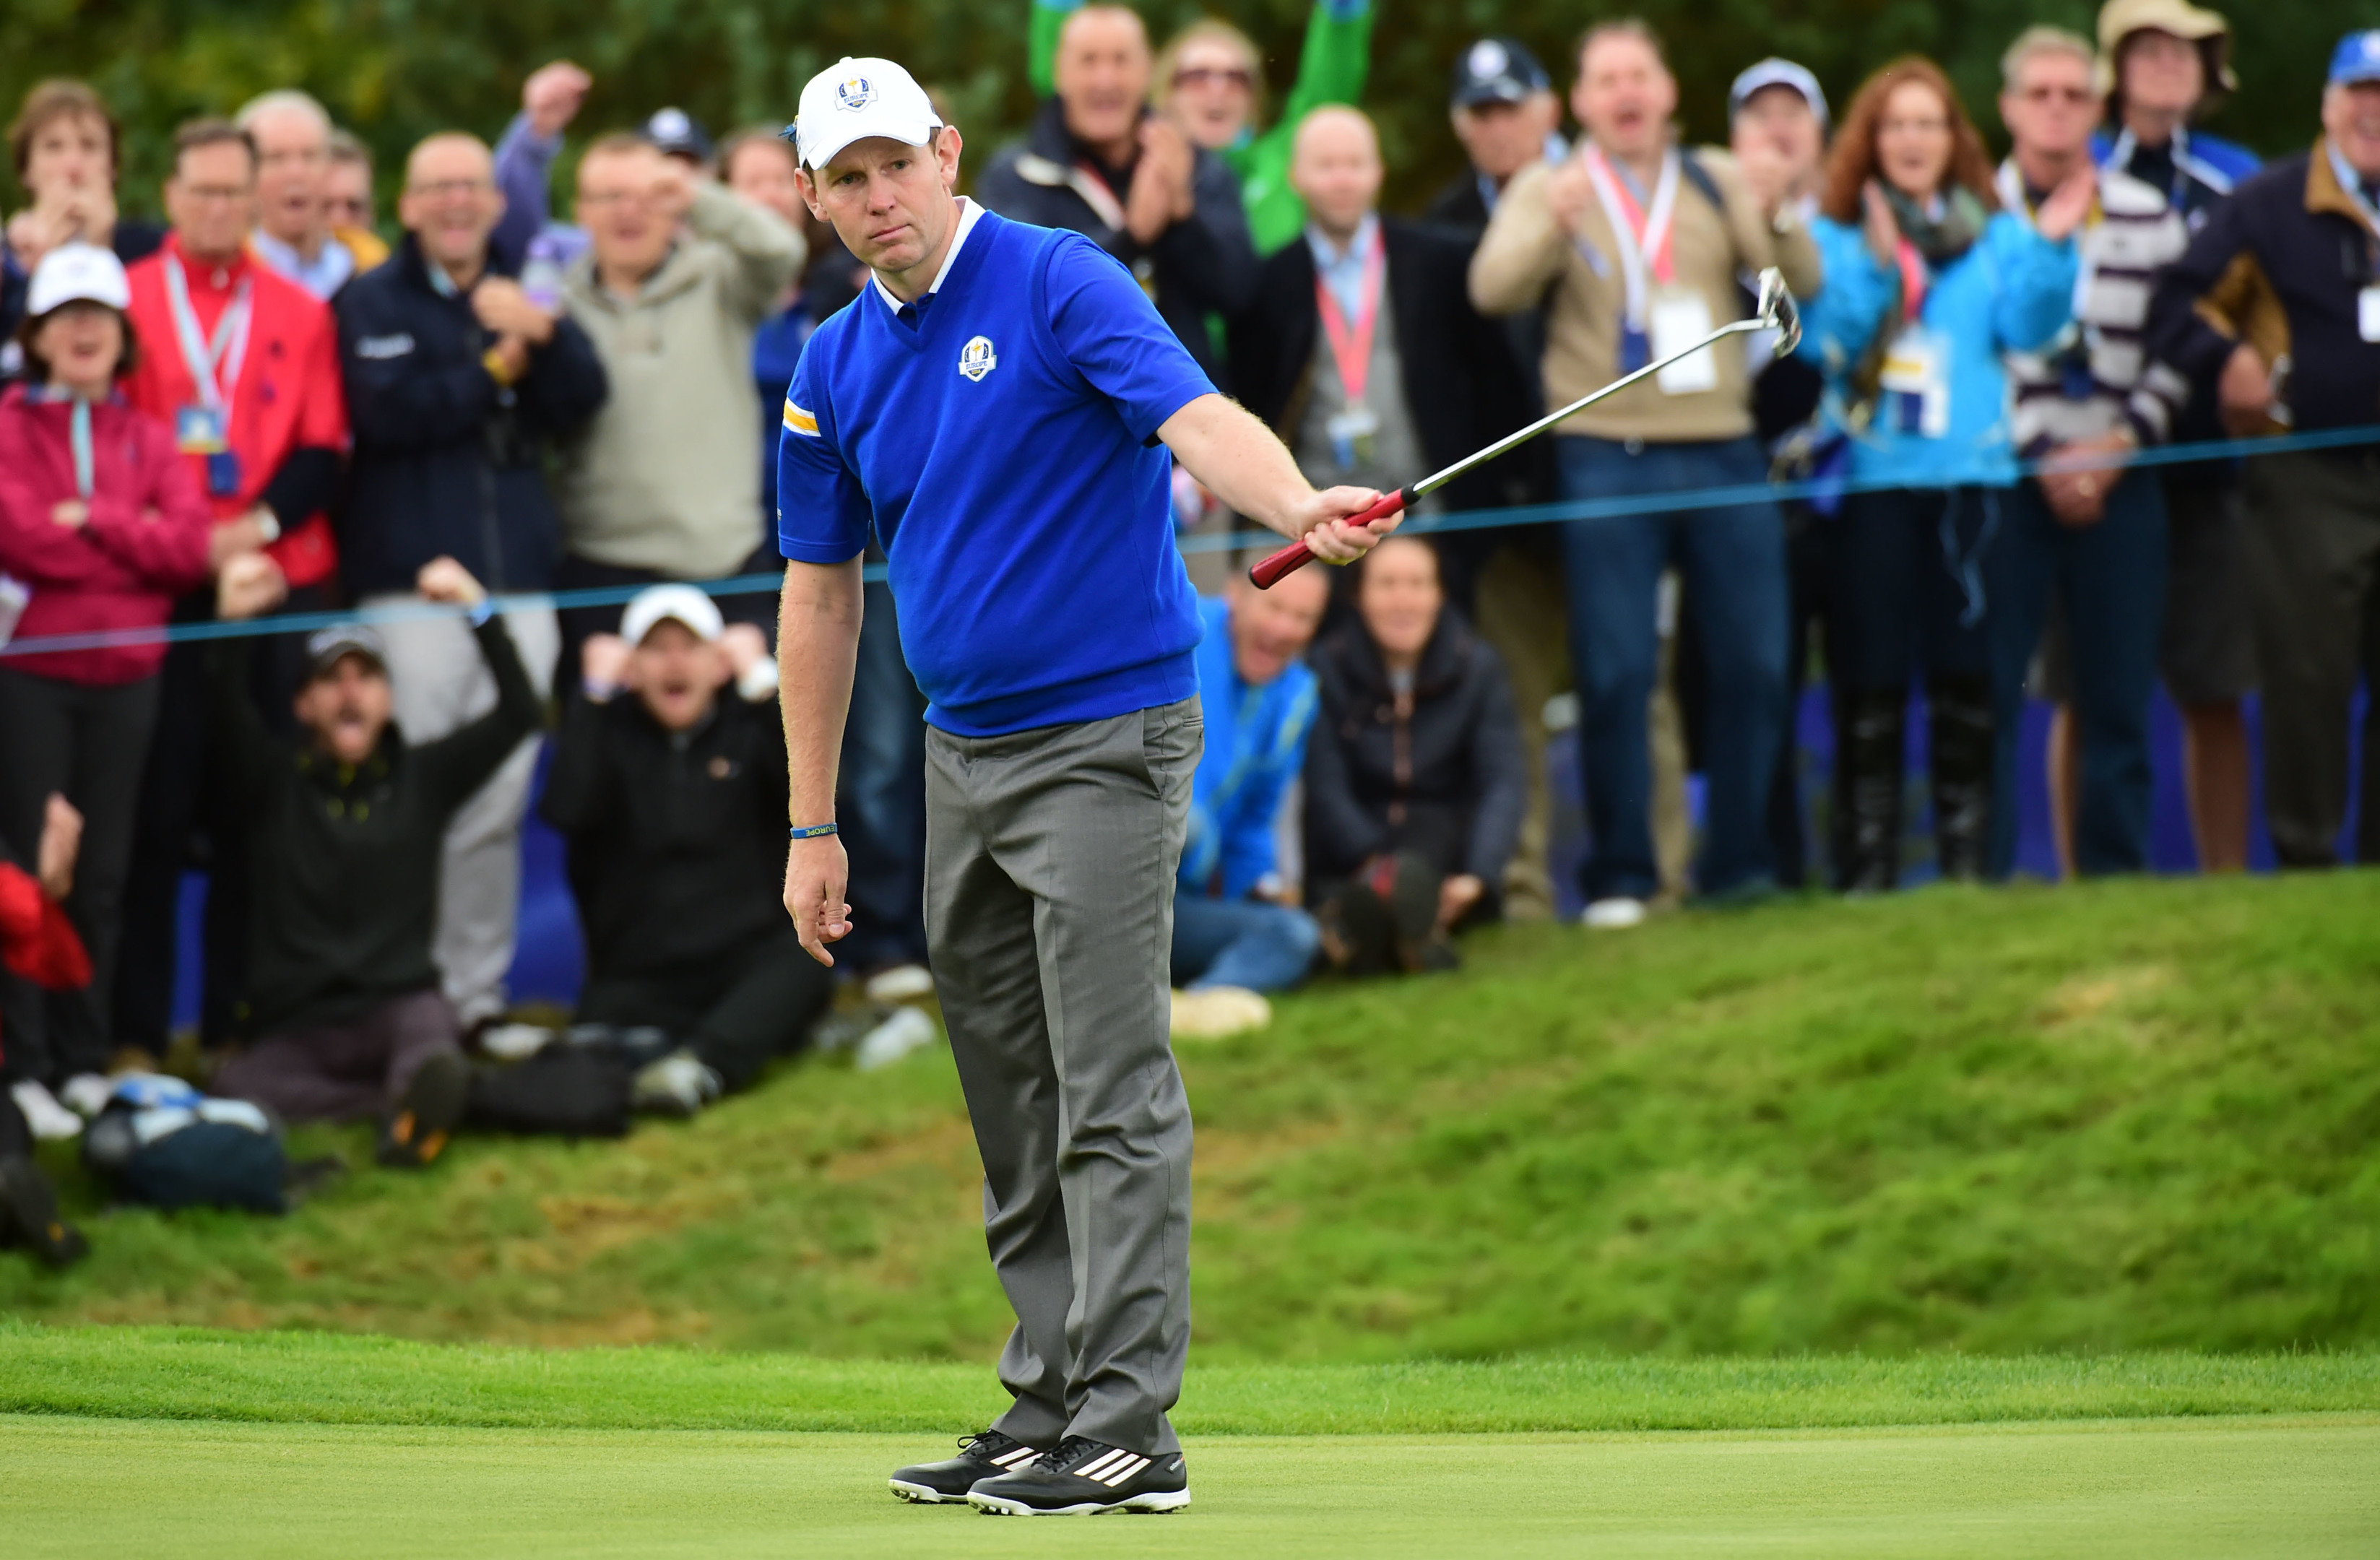 Stephen Gallacher has recovered from a bout of sinusitis to play at the British Masters.